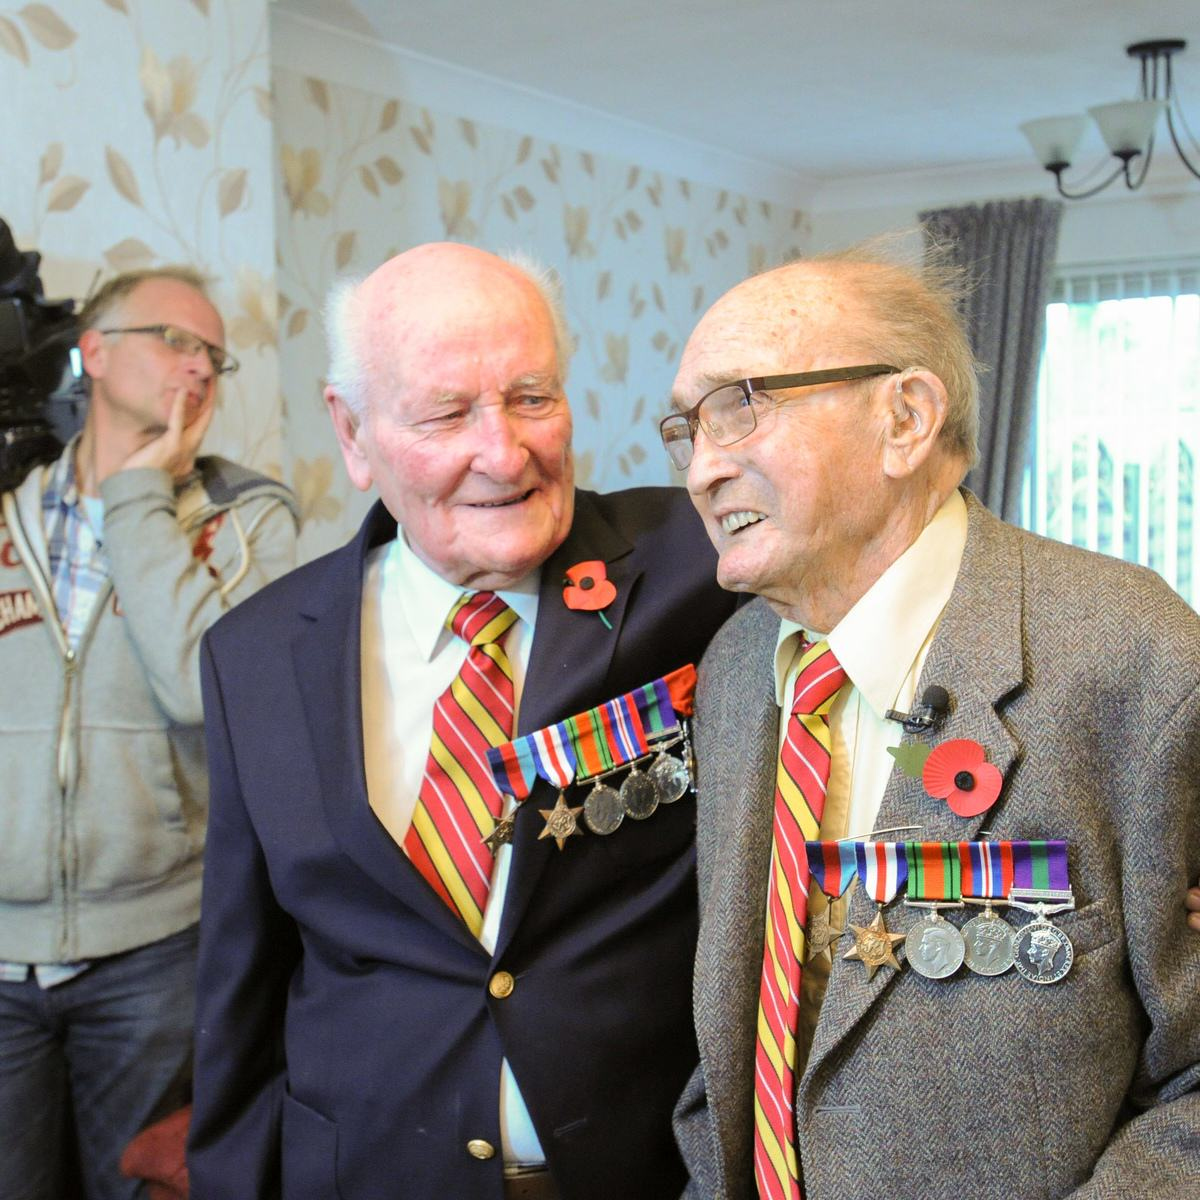 These Two War Heroes Were Reunited By Chance After 40 Years UNILAD MASONS WAR HEROES 0459838